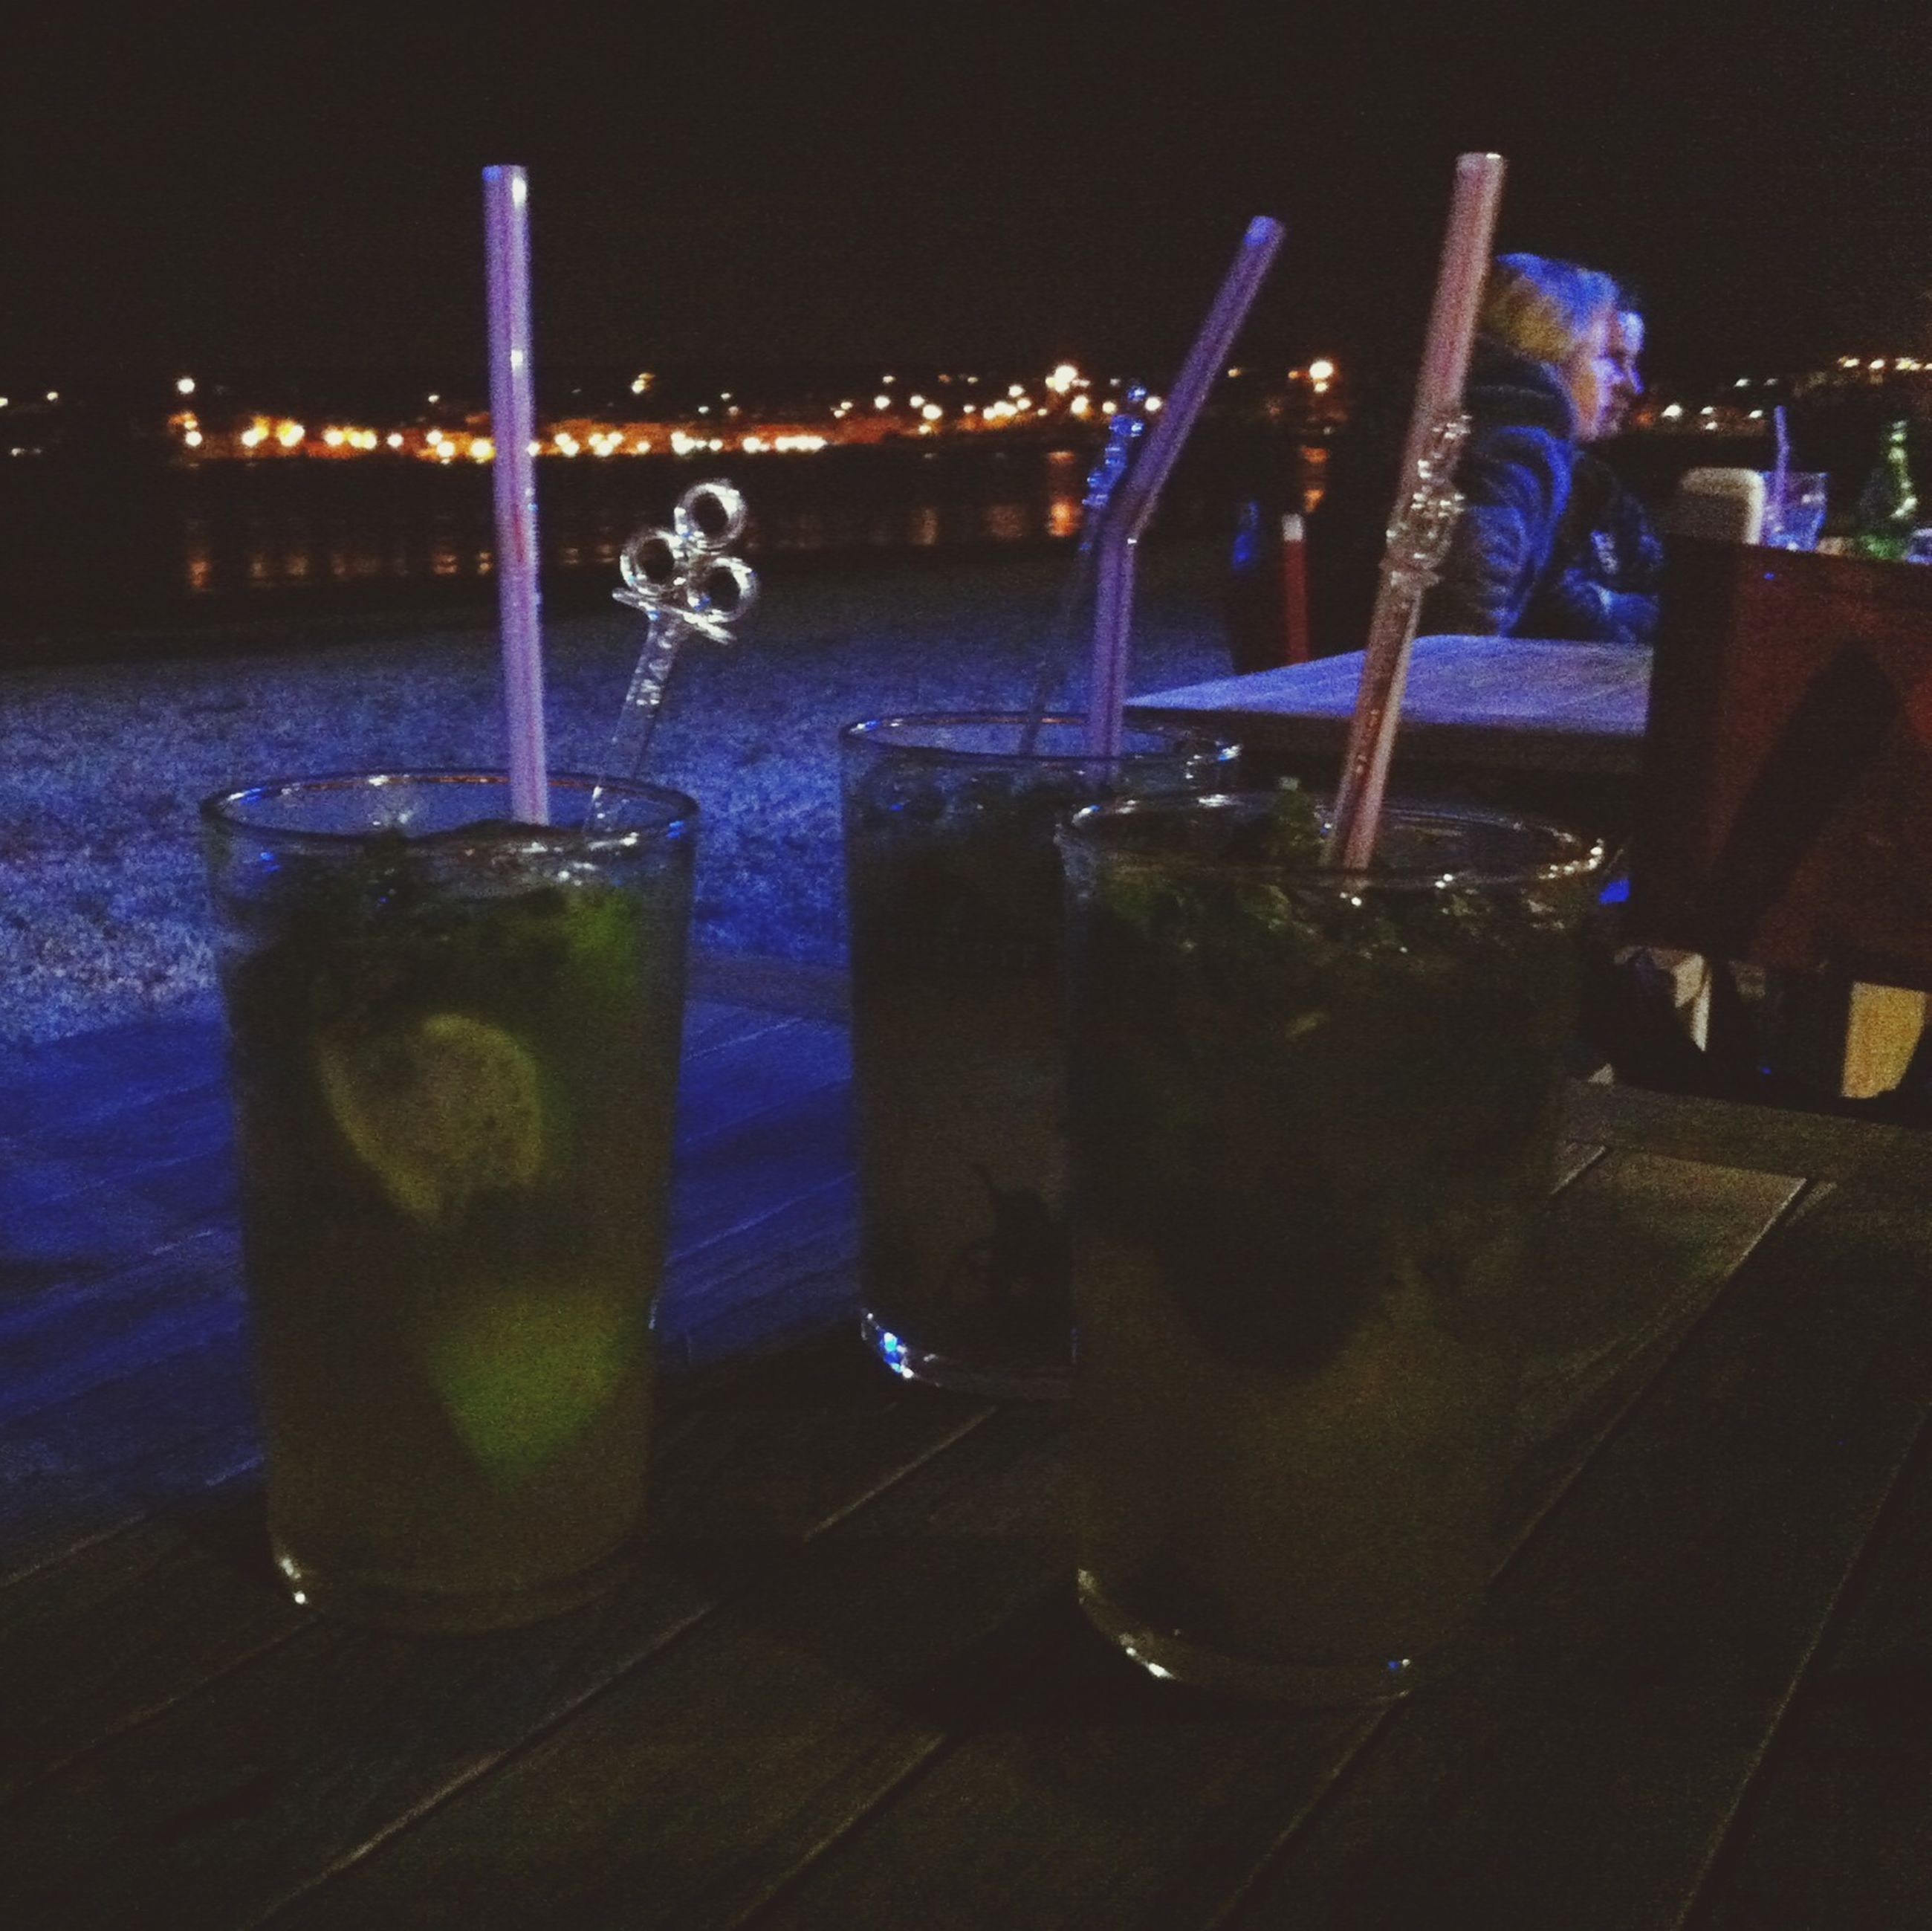 night, water, illuminated, table, reflection, drinking glass, drink, restaurant, swimming pool, refreshment, absence, no people, chair, food and drink, lighting equipment, empty, blue, sea, still life, waterfront